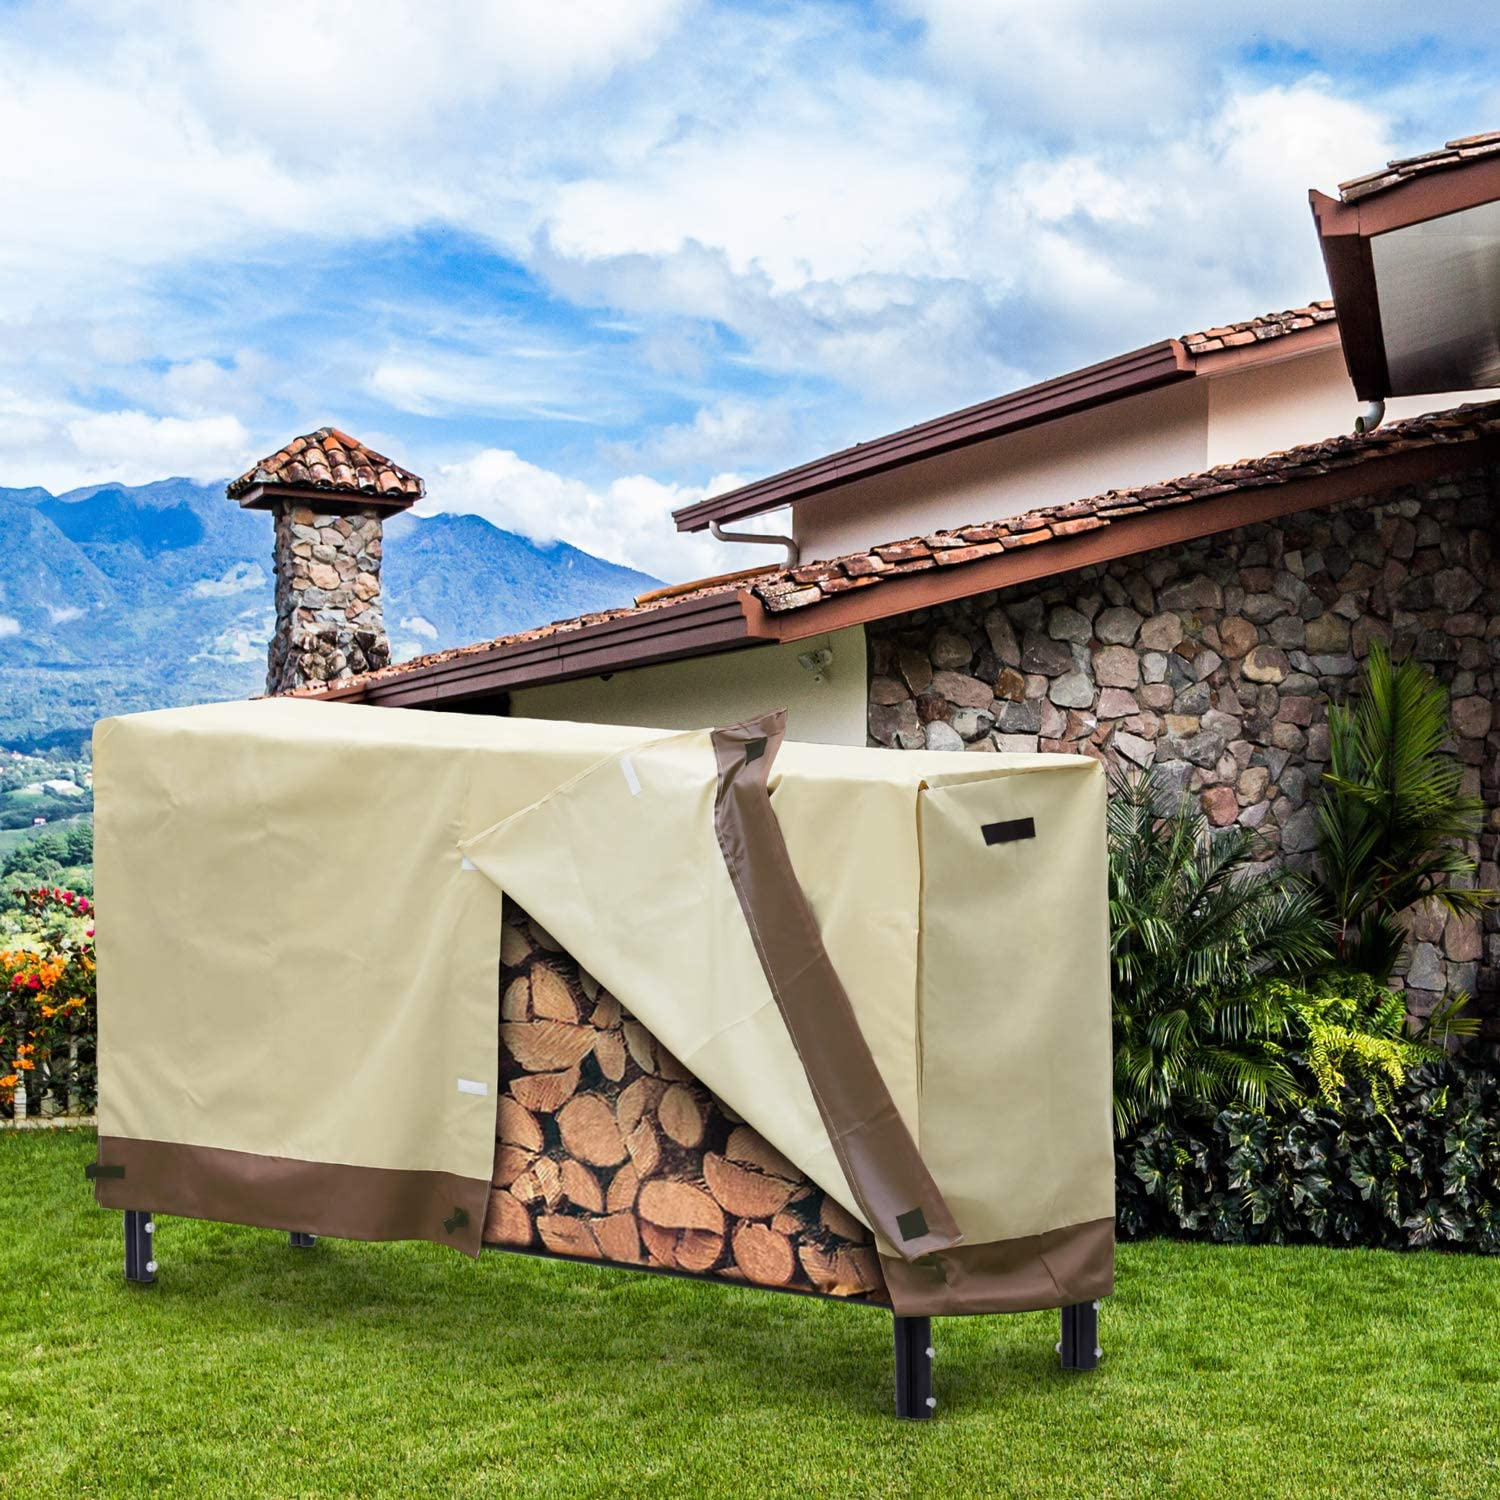 96 L x 24 W x 42 H dnswez Firewood Rack Cover 8 Foot Heavy Duay Waterproof Log Rack Cover with 600D Oxford /& Weather-Resistant,Firewood Storage Holder Cover for Indoor Outdoor